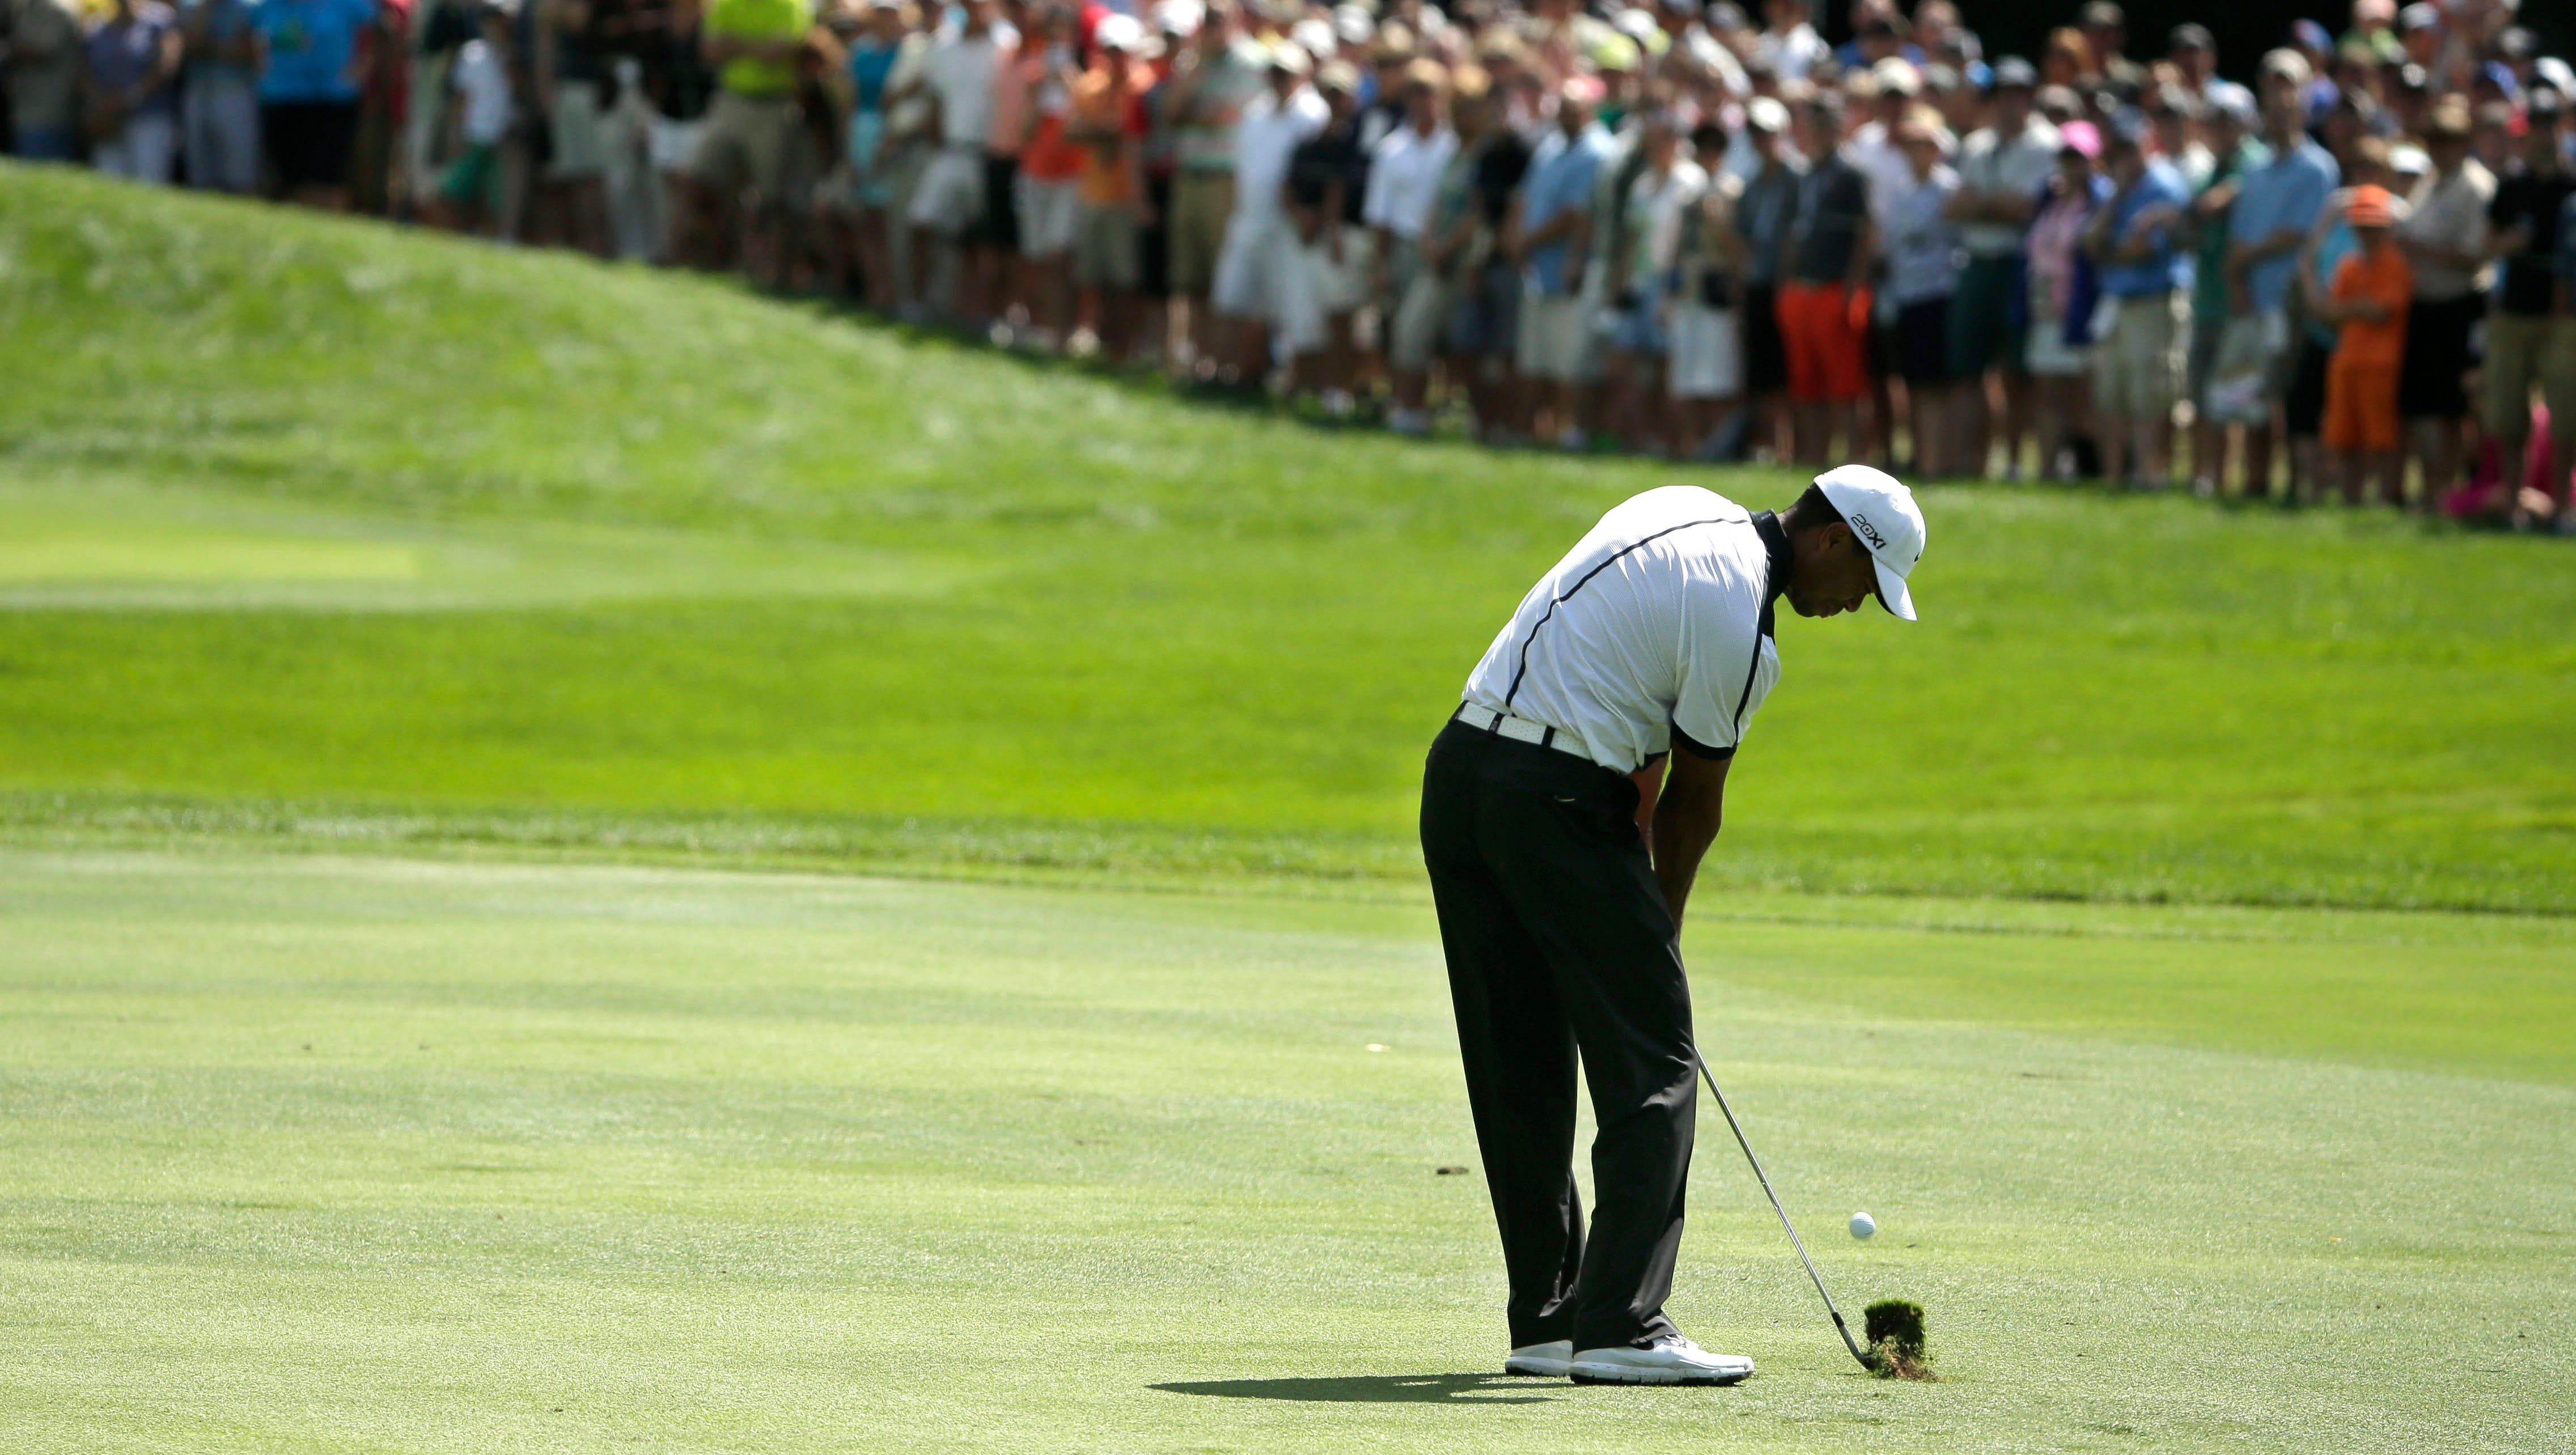 Tiger Woods hits from the fairway on the first hole.